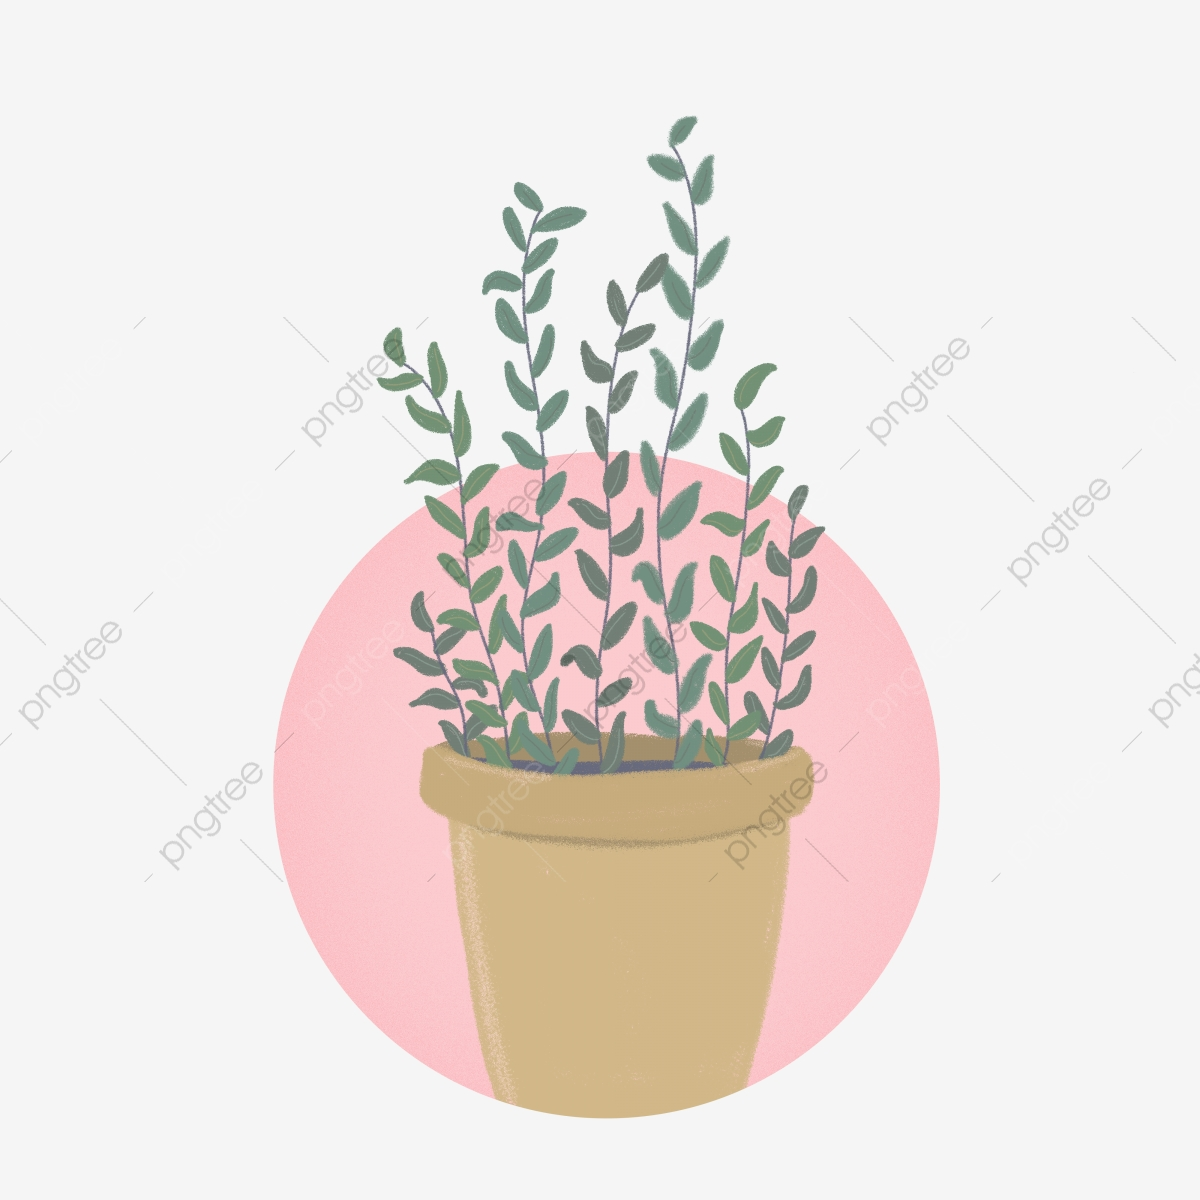 Commercial Plant Potted Cute Elements Plant Potted Plant Lovely Png Transparent Clipart Image And Psd File For Free Download